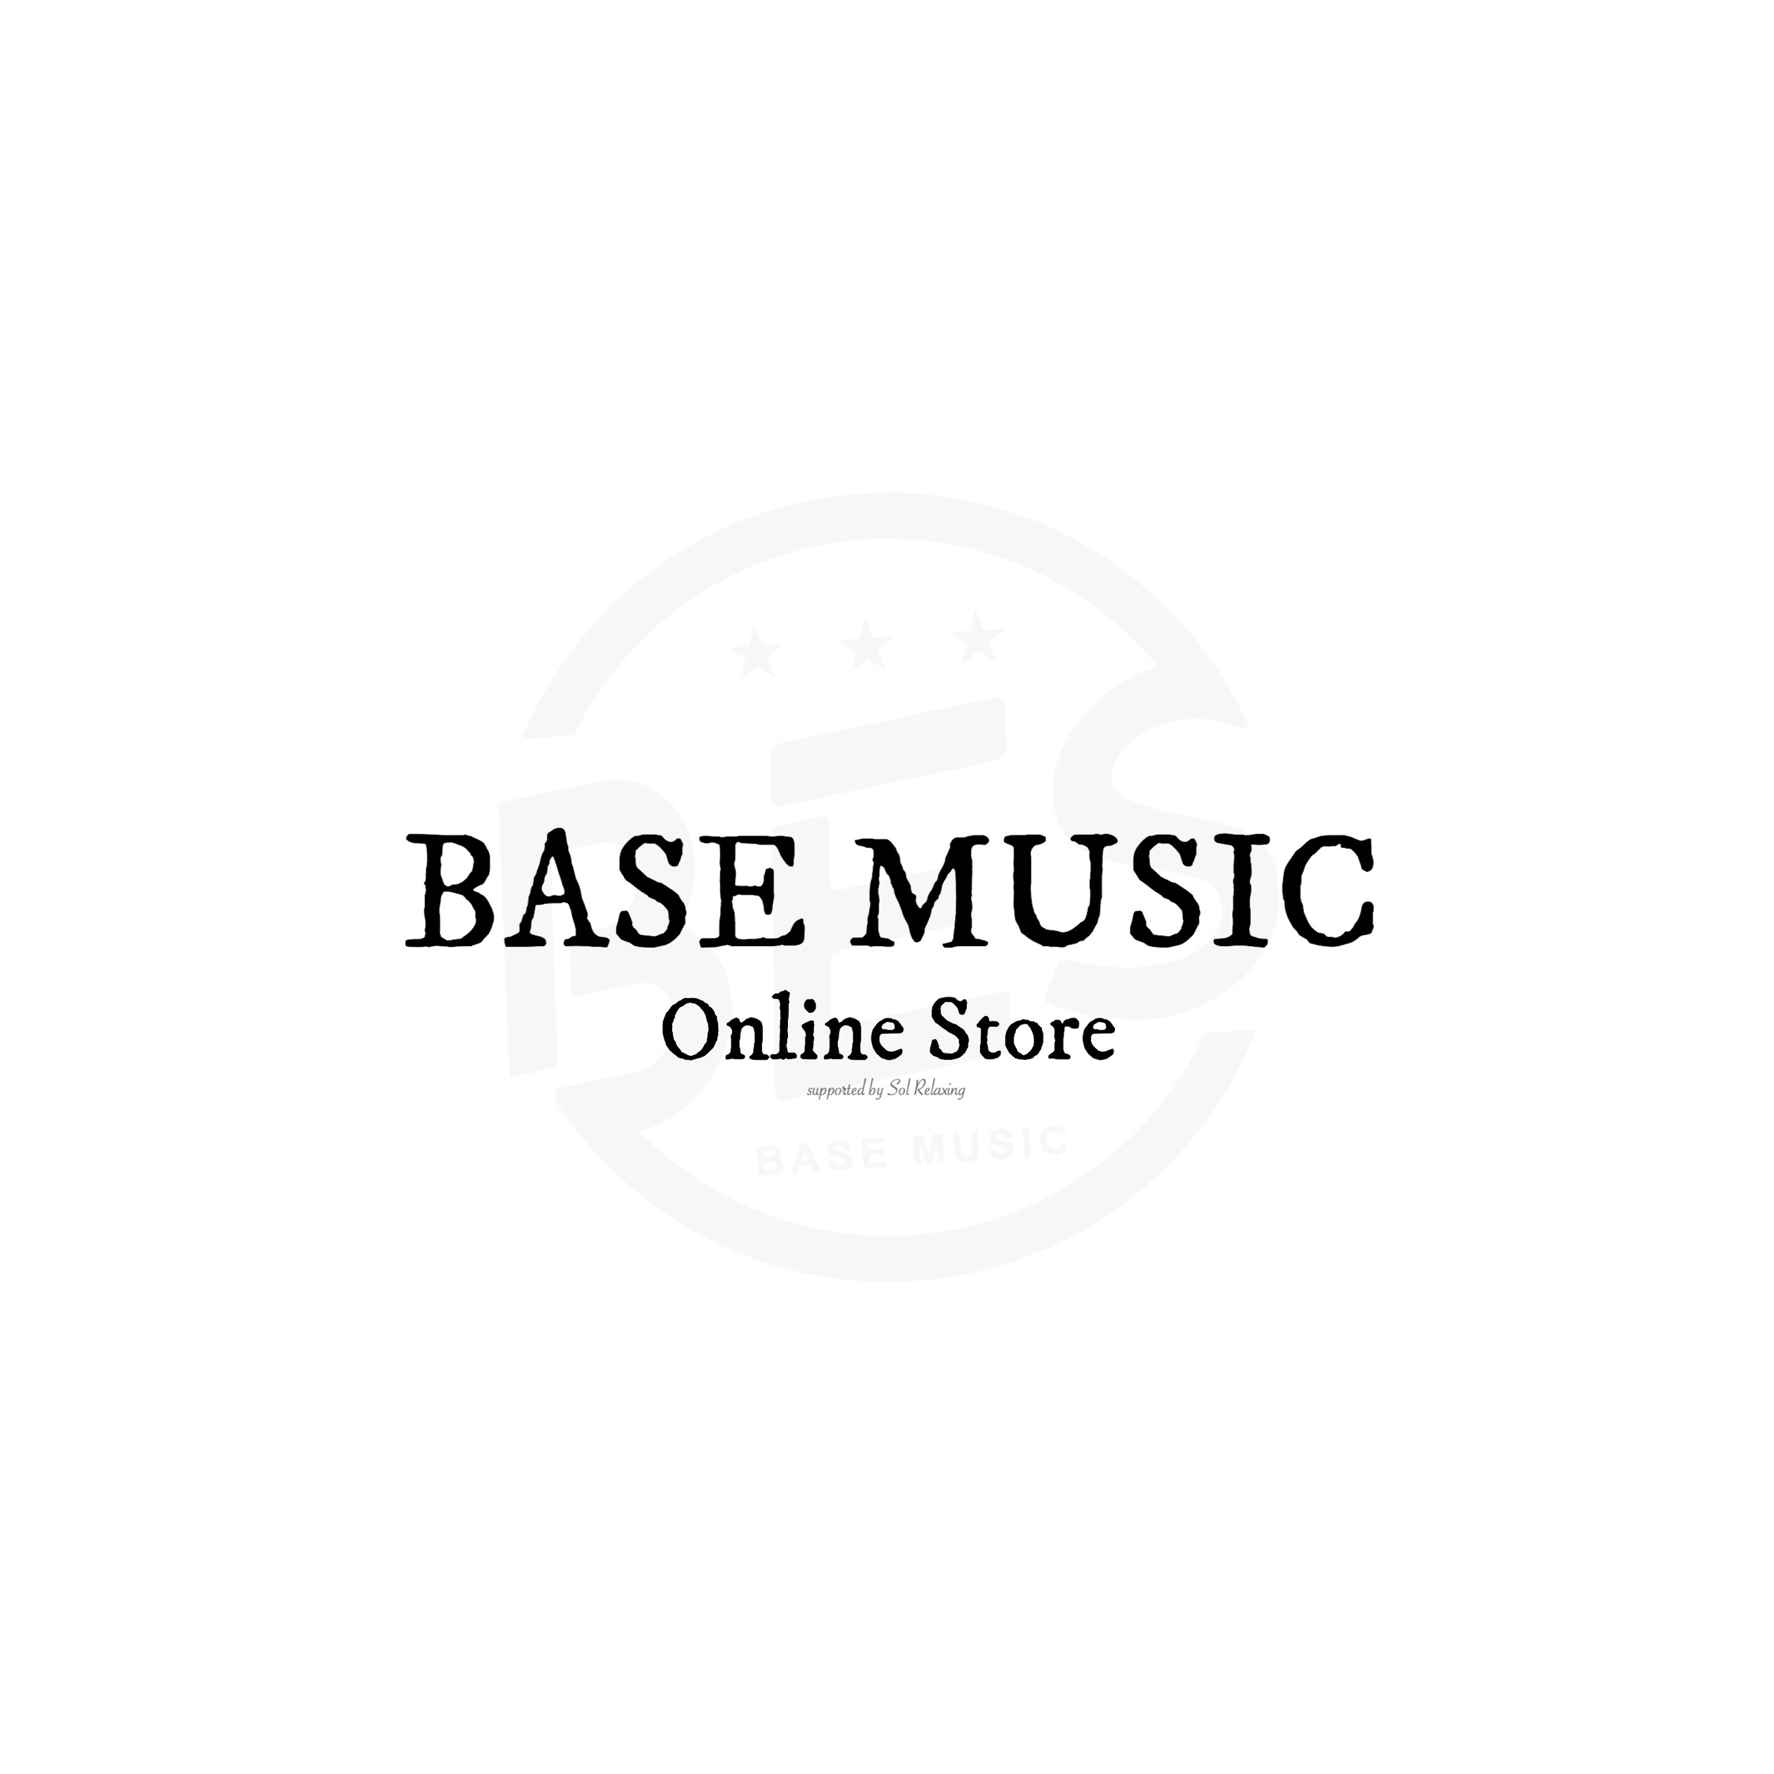 BASE MUSIC ONLINE STORE